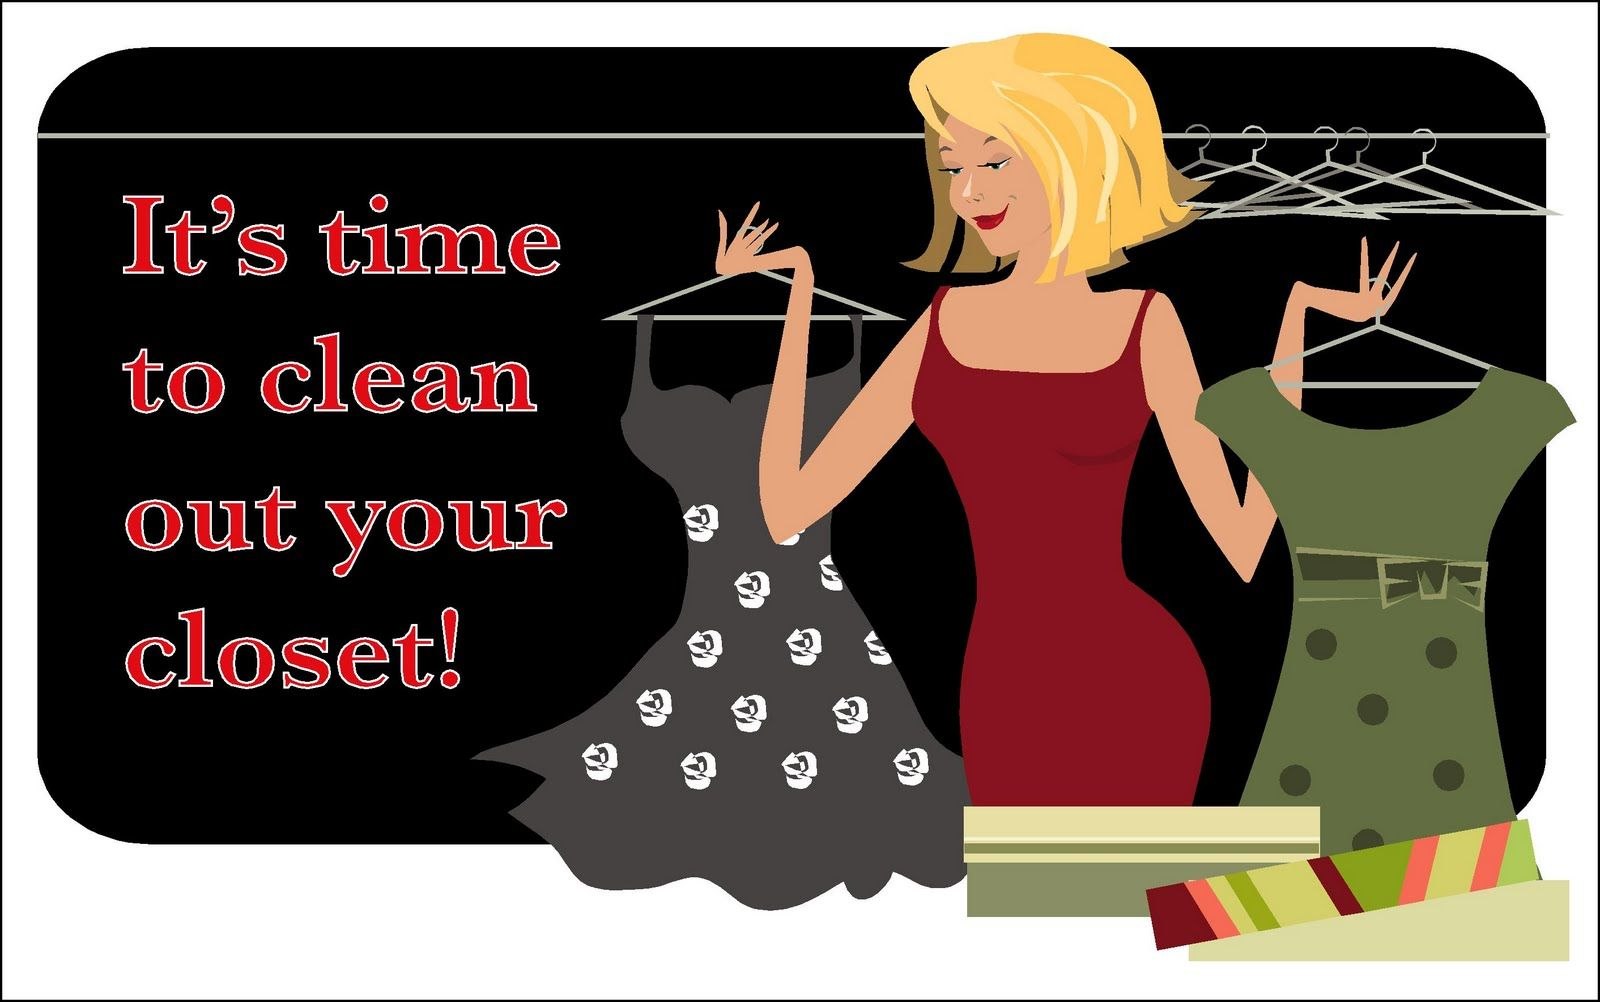 How To Clean Out Your Closet A Great Way To Clean Out Your Closet  Help Us Help Others Bring